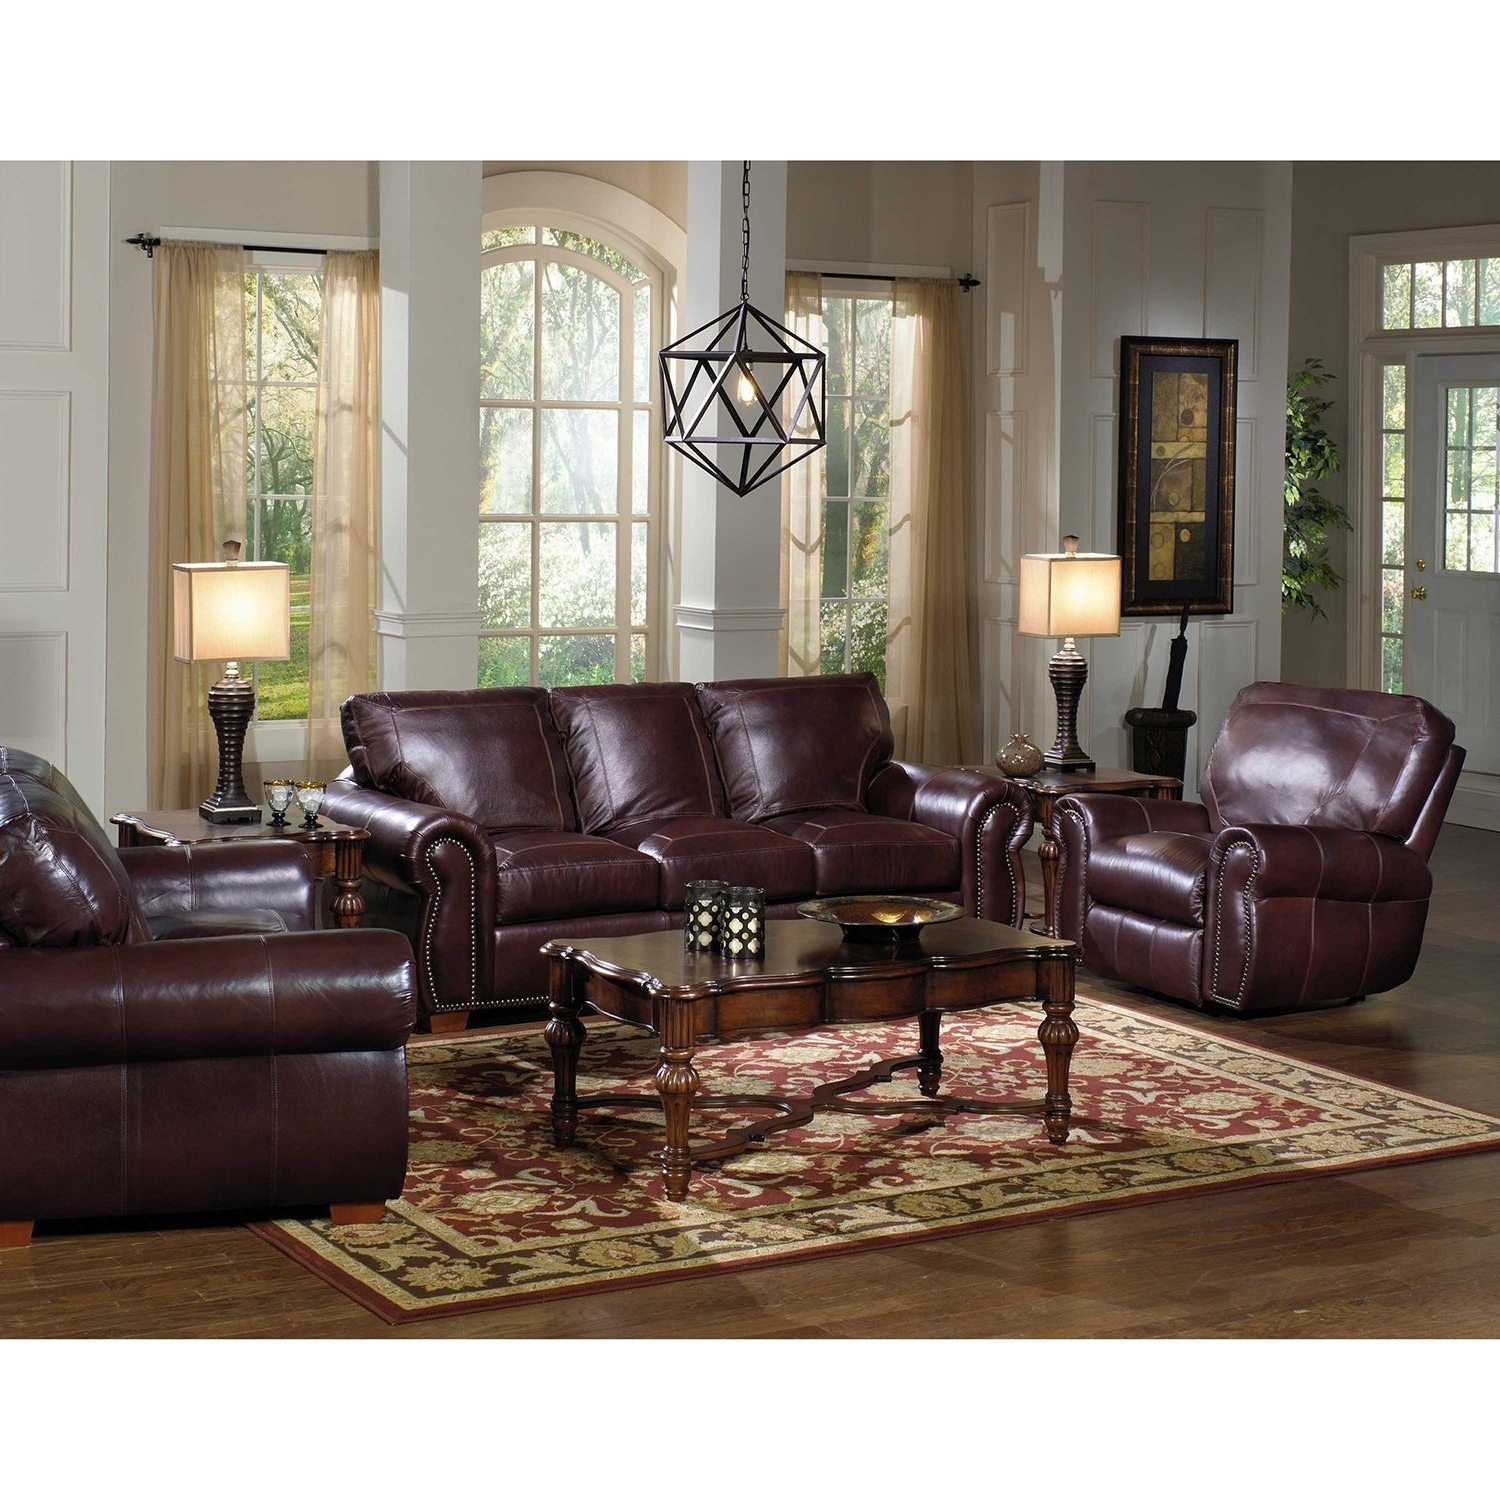 Current Kingston Ontario Sectional Sofas Inside Kingston Top Grain Leather Sofa, Loveseat And Recliner Living Room (View 11 of 20)